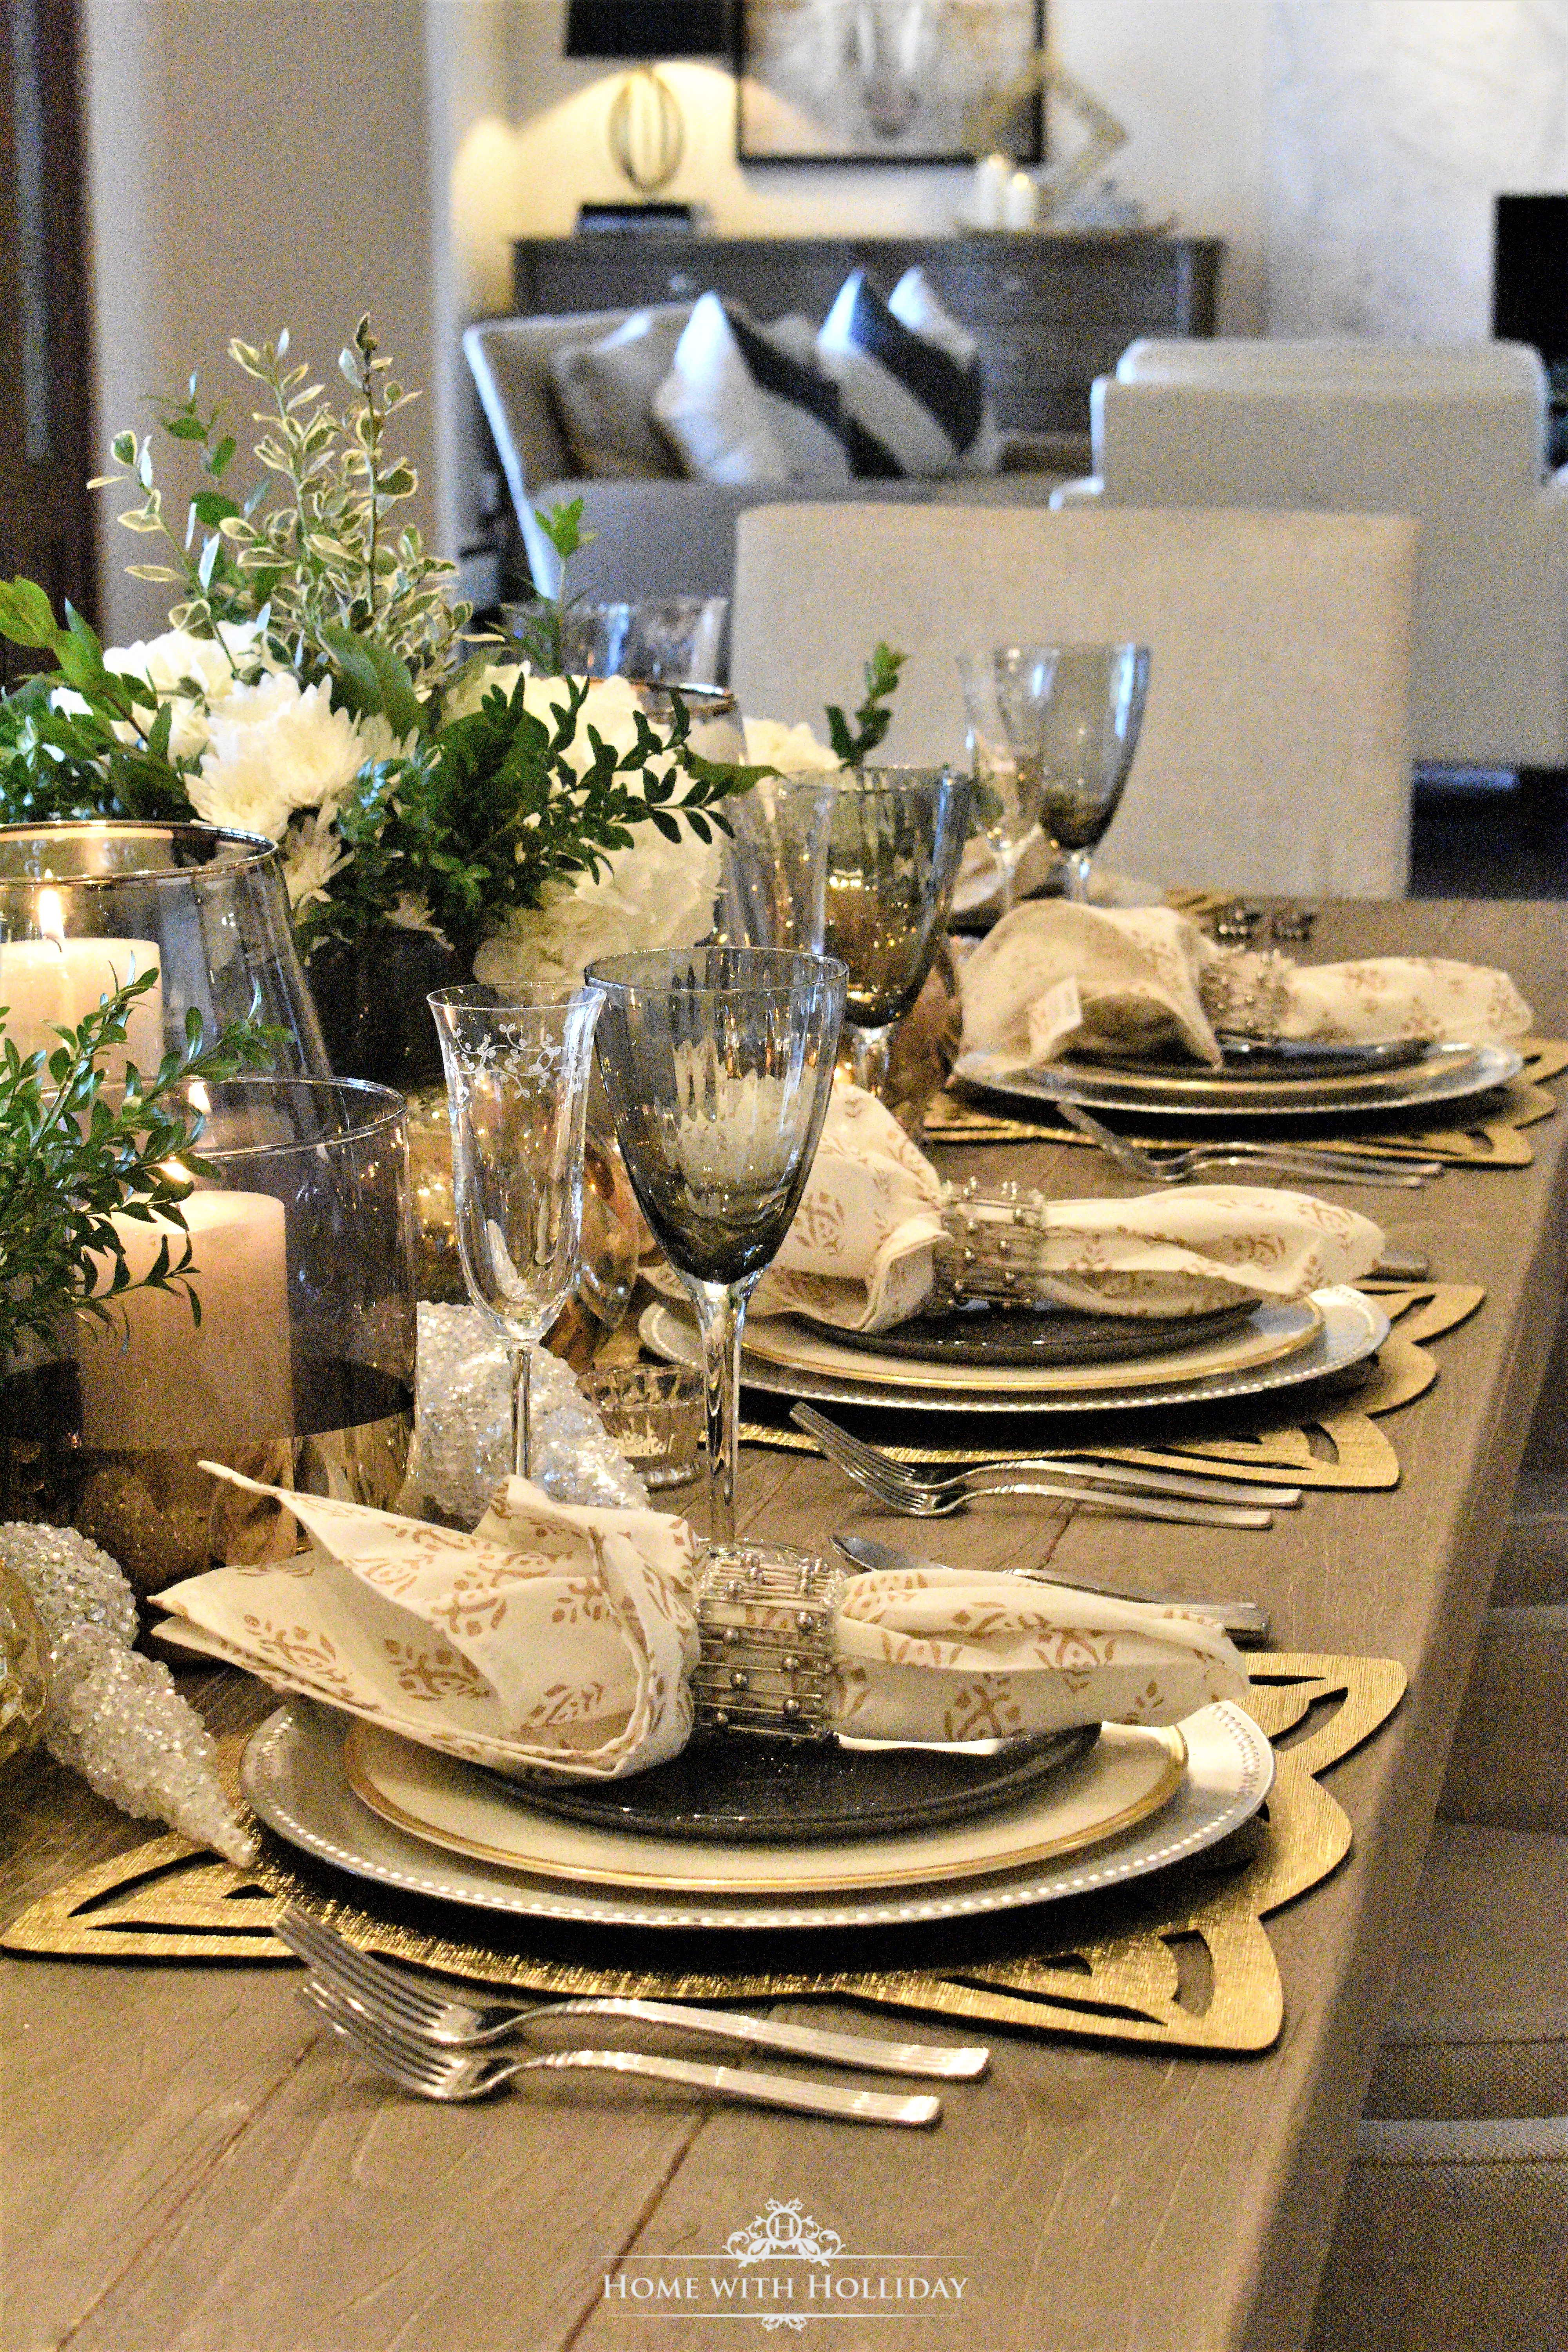 Easy and Elegant Christmas Decorating Ideas - Mix Metallics - Home with Holliday